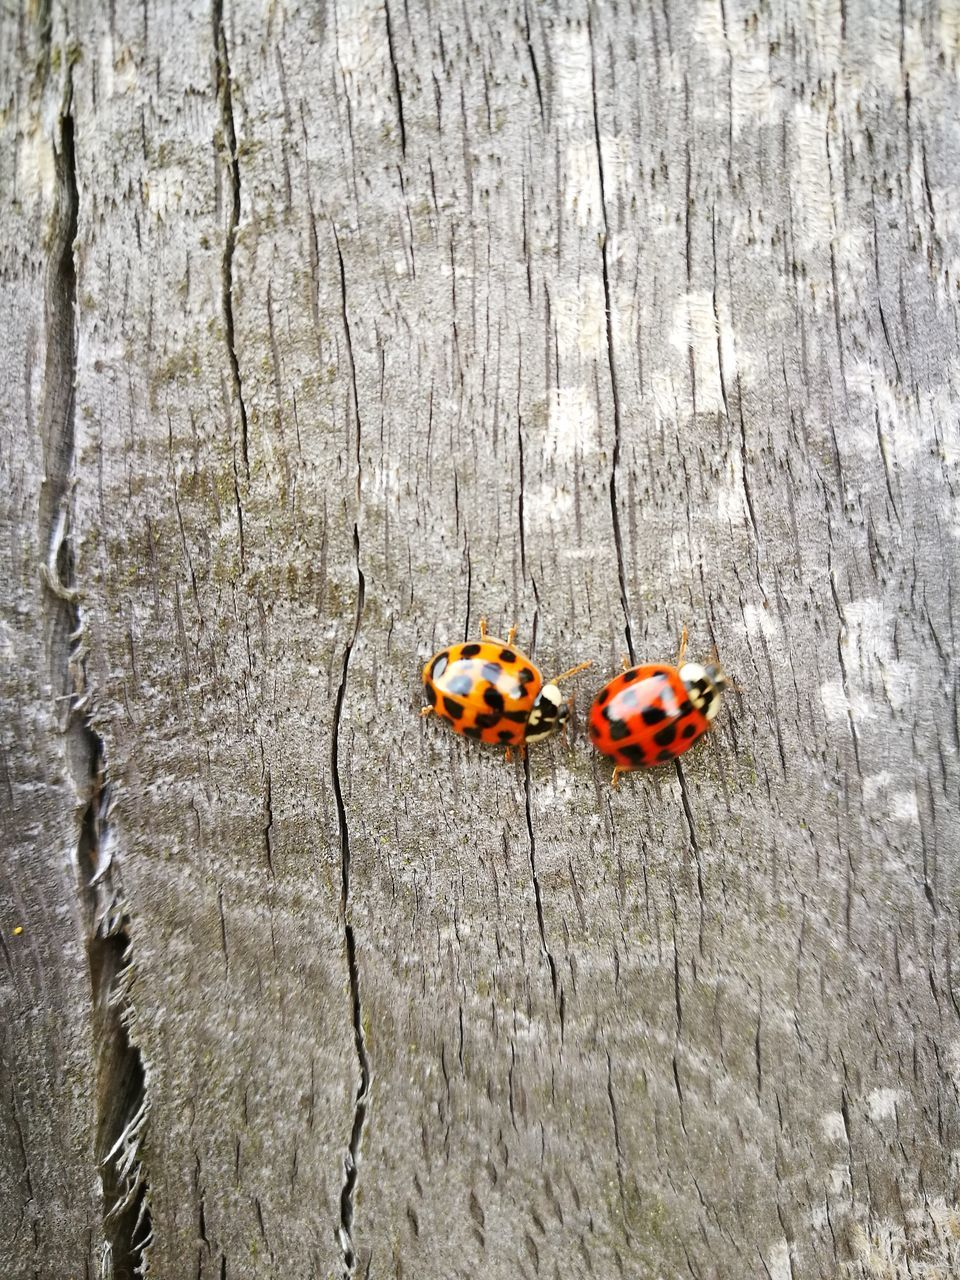 animal themes, insect, animals in the wild, ladybug, togetherness, day, outdoors, no people, red, close-up, nature